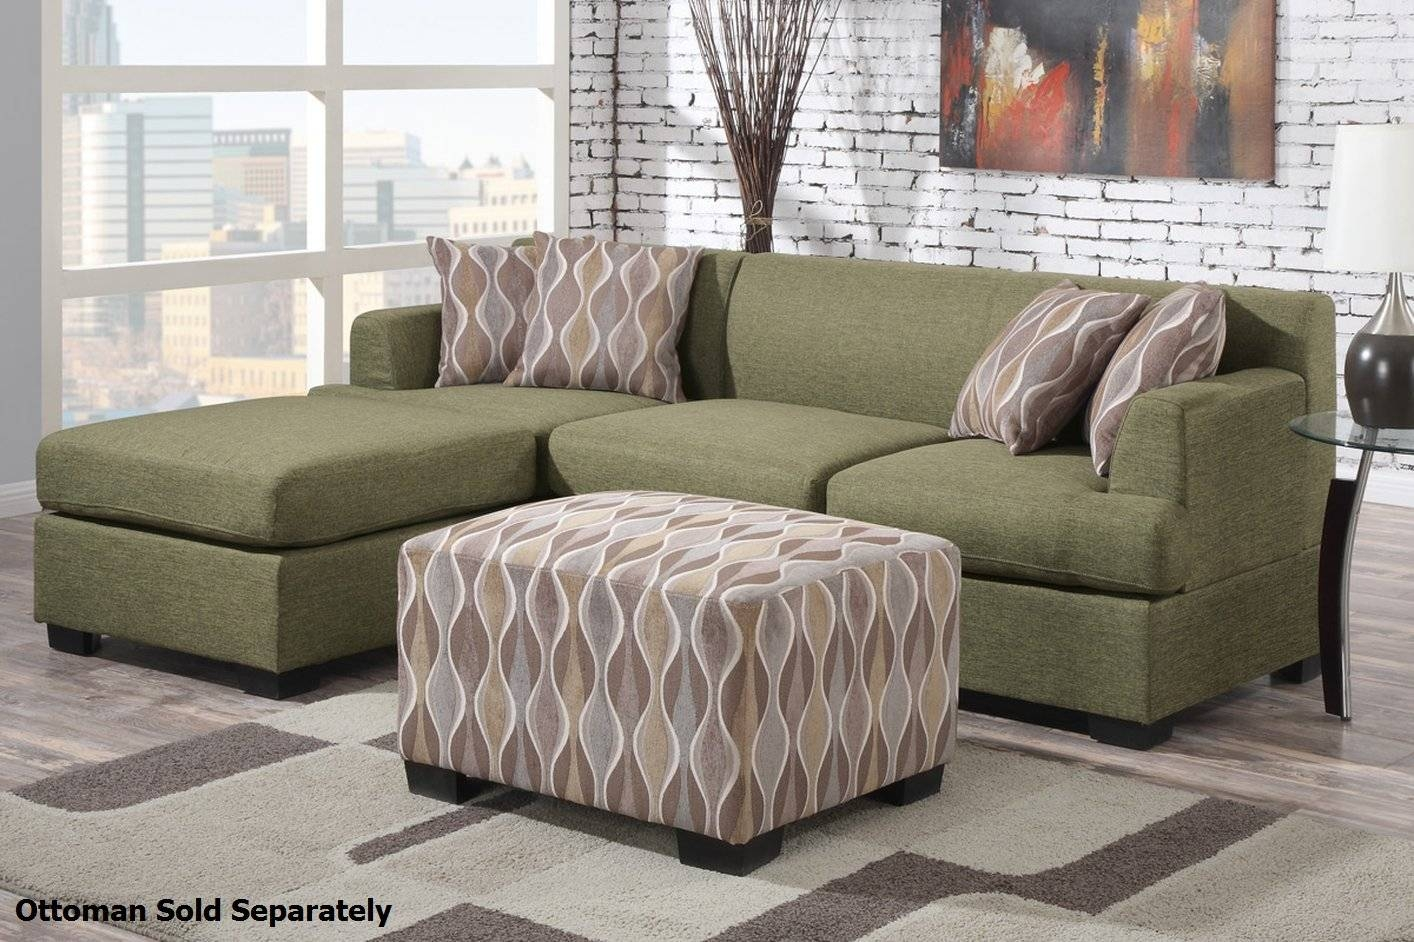 Green Sectional Sofa | Ira Design regarding Olive Green Sectional Sofas (Image 3 of 15)